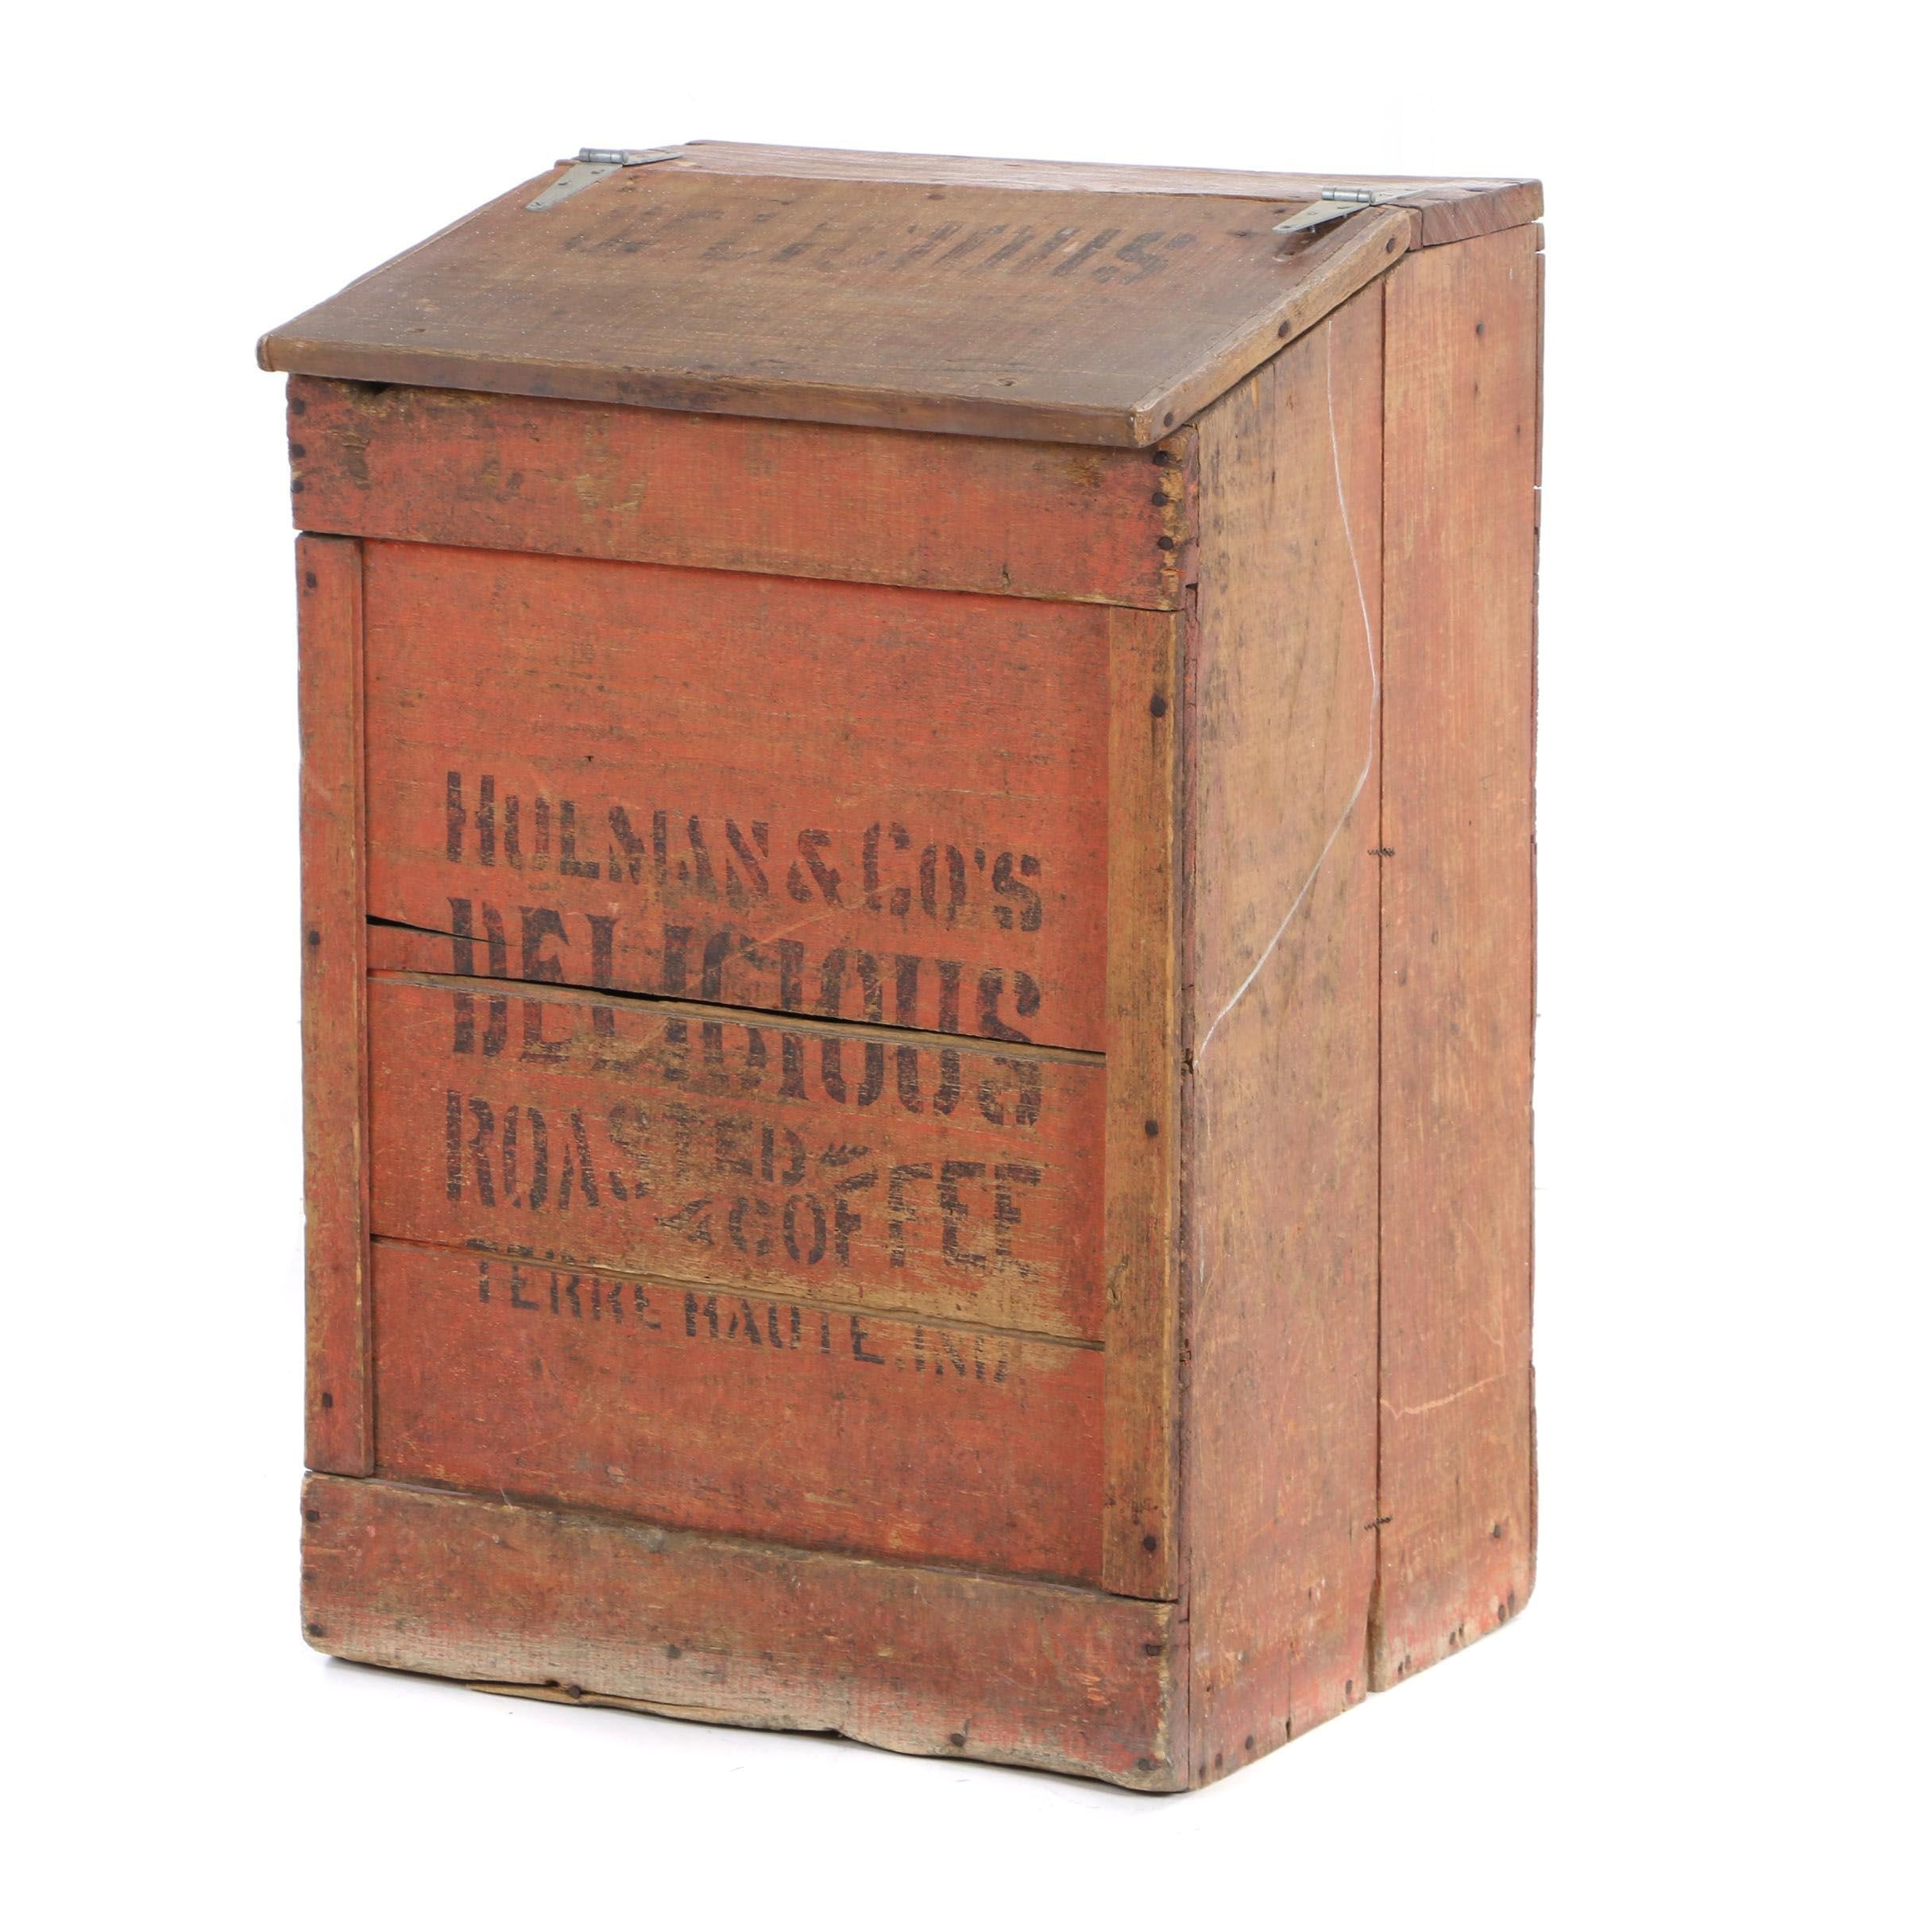 Painted Pine and Stenciled Country Store Bin for Hulman Coffee Co., Circa 1903